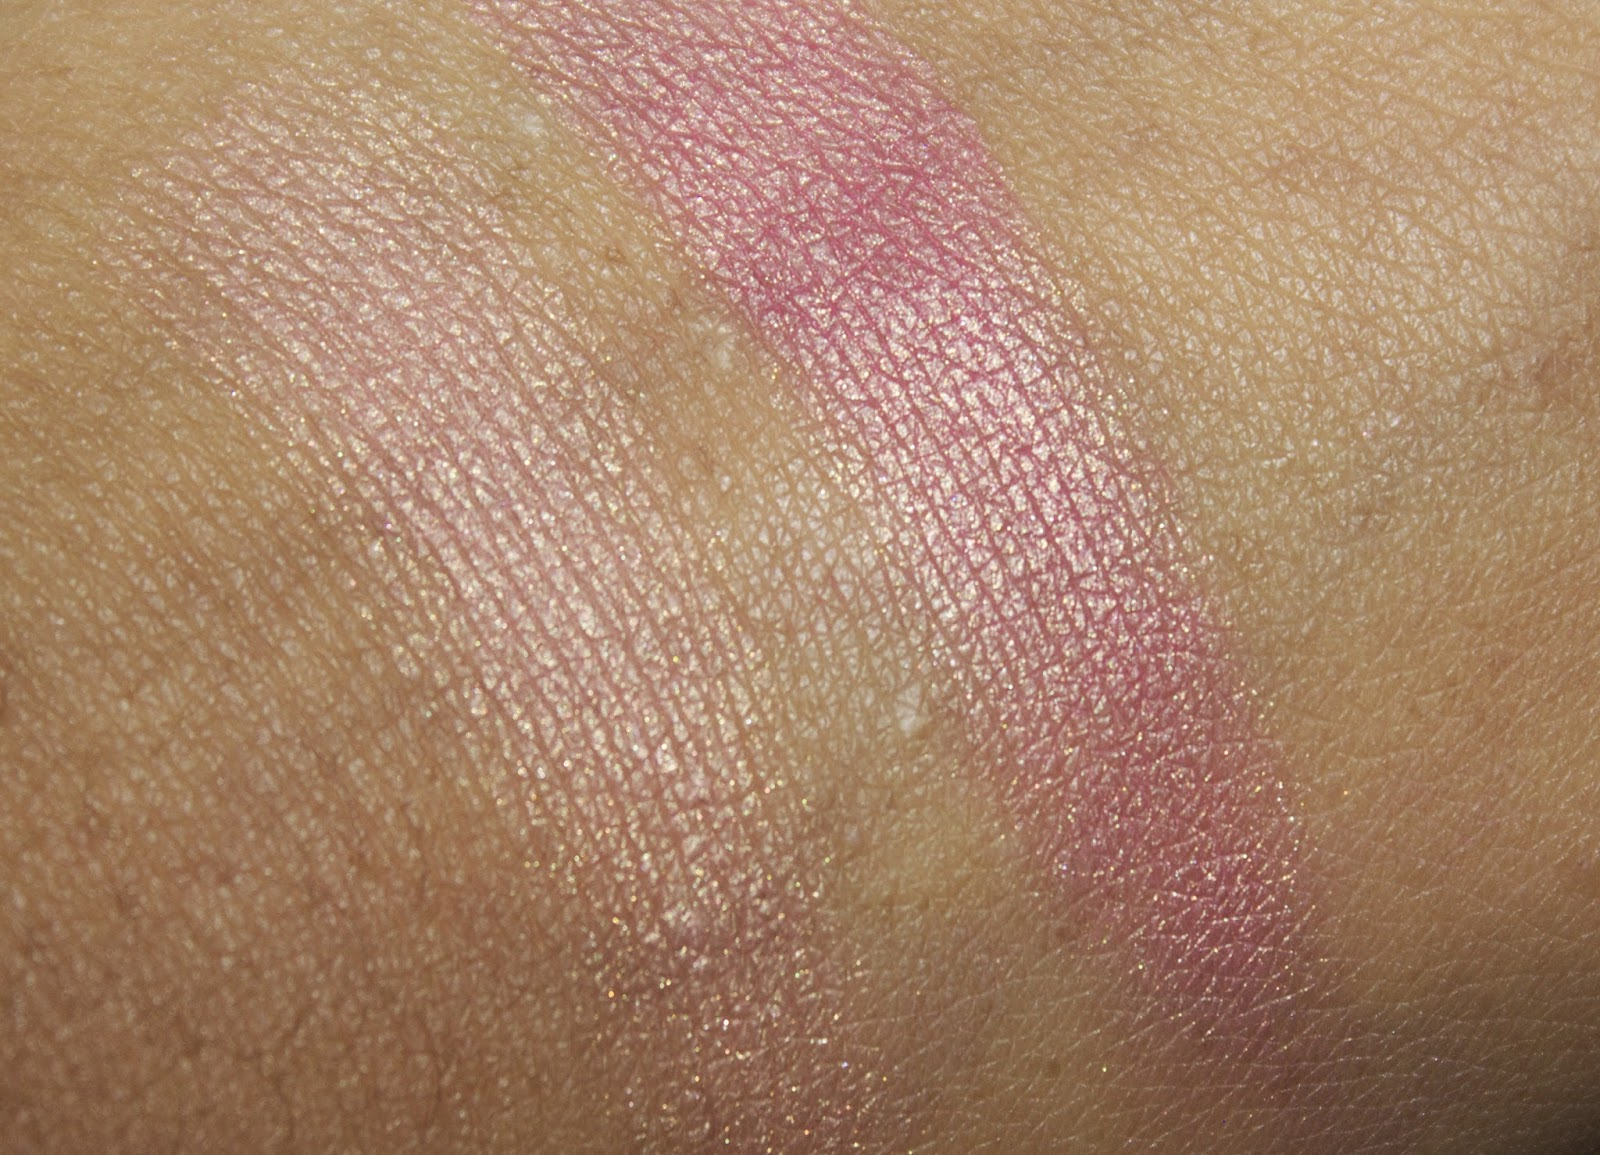 swatches of Charlotte Tilbury Swirl & Pop Blusher - Love Is The Drug